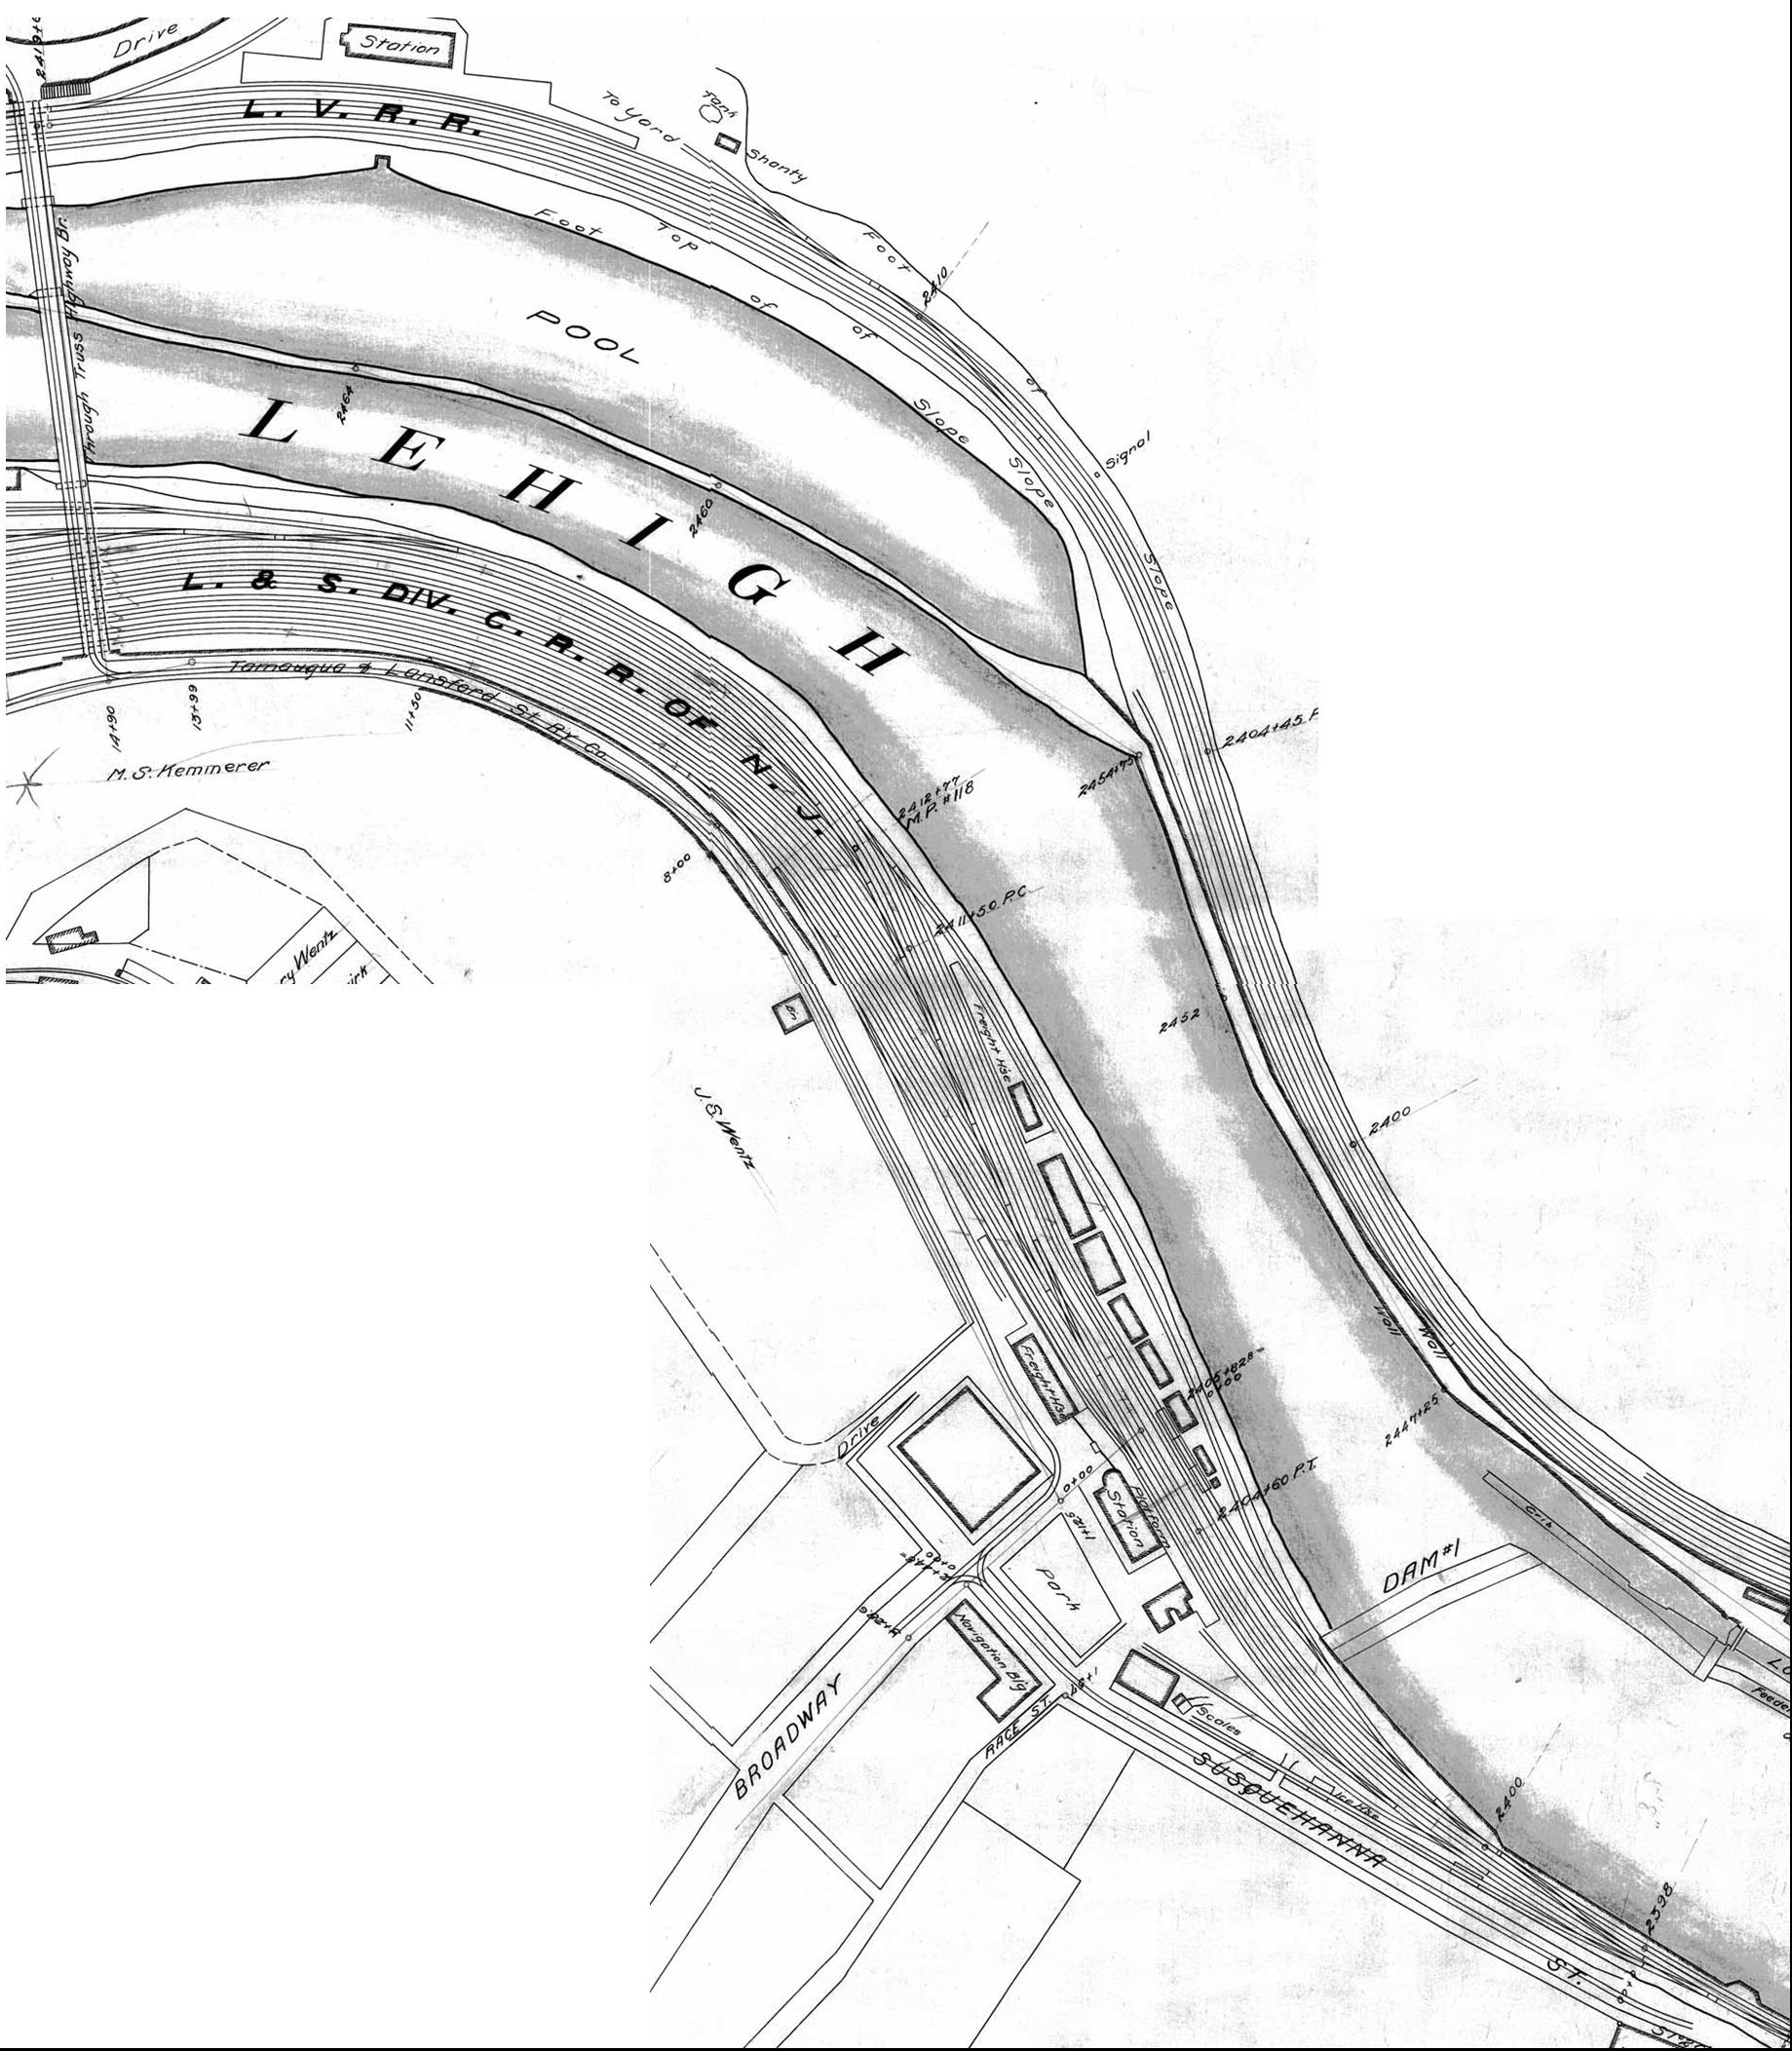 Cnj Plans Maps Track Diagrams Of Mauch Chunk Jim Thorpe